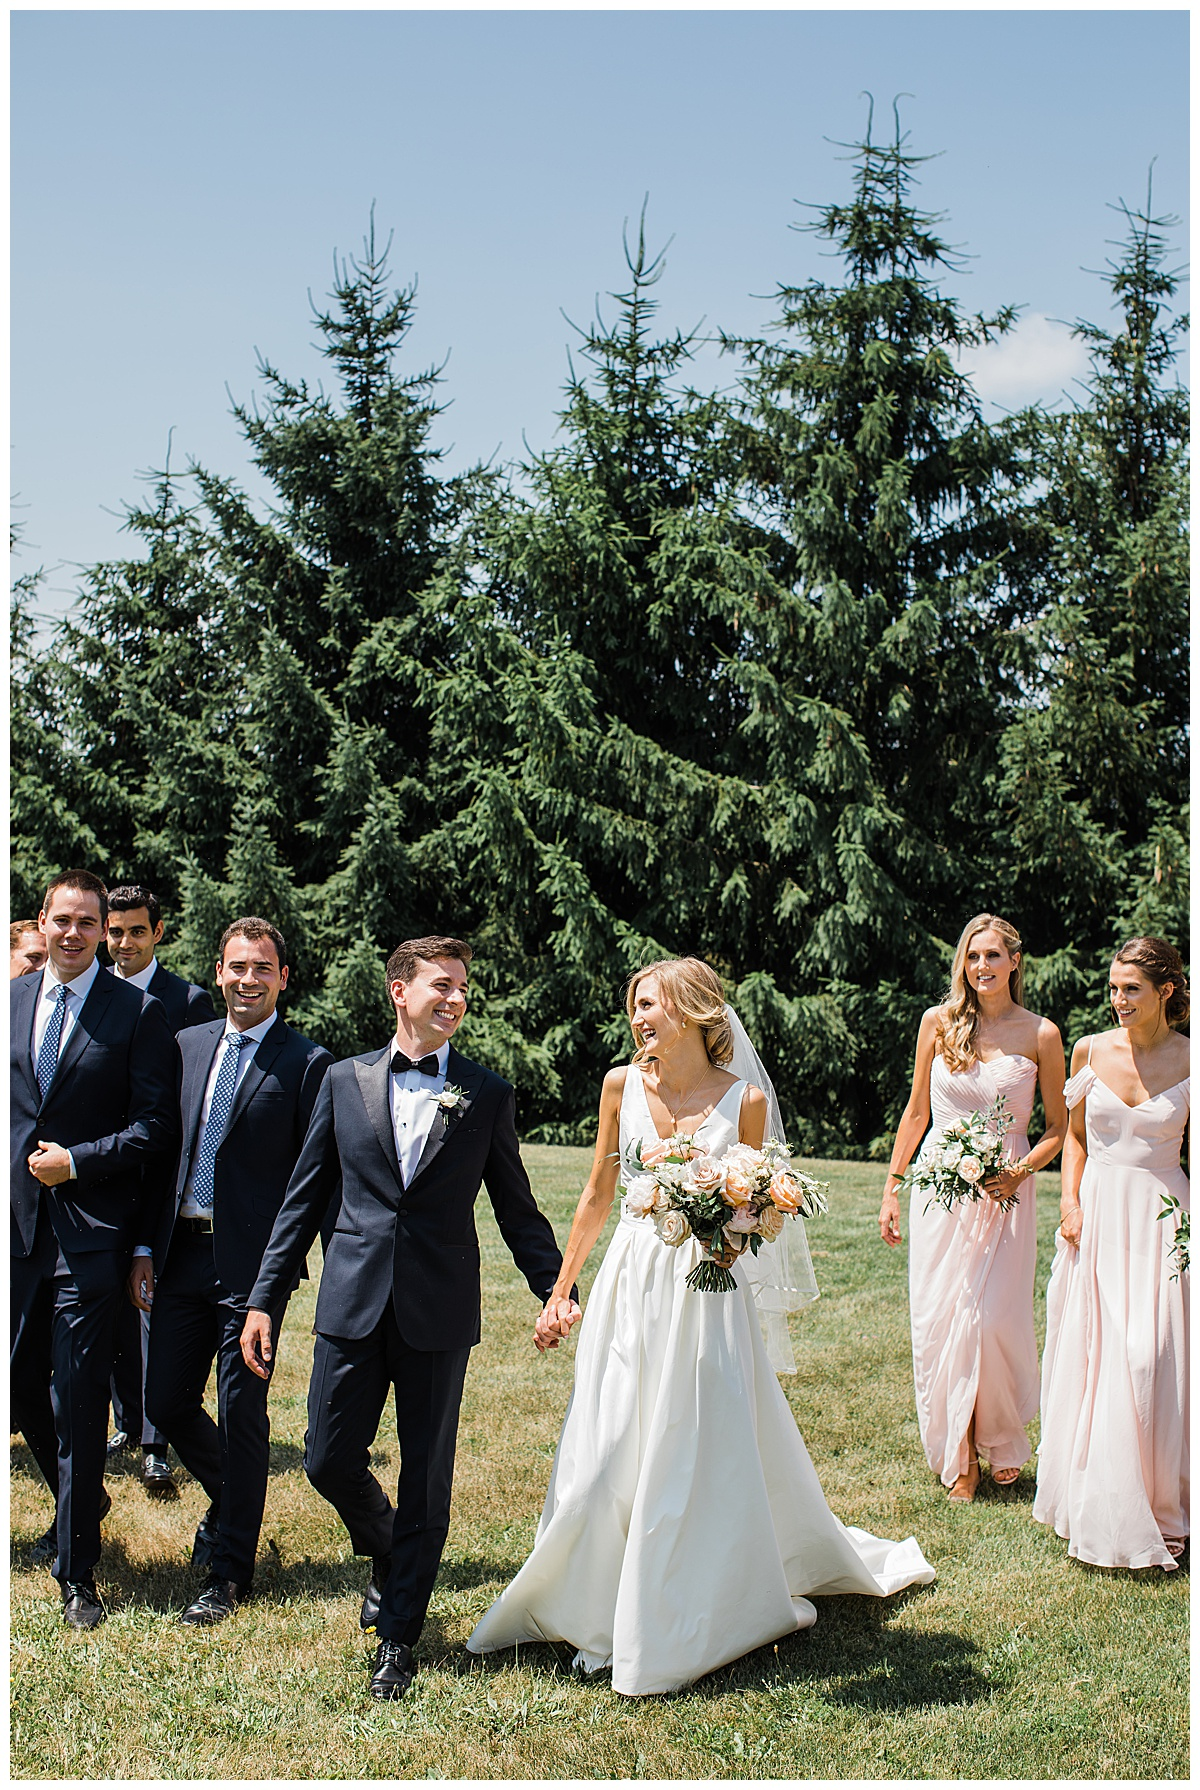 Bridal party walking forward on hill with pine trees behind them  Georgetown, Ontario wedding  3photography